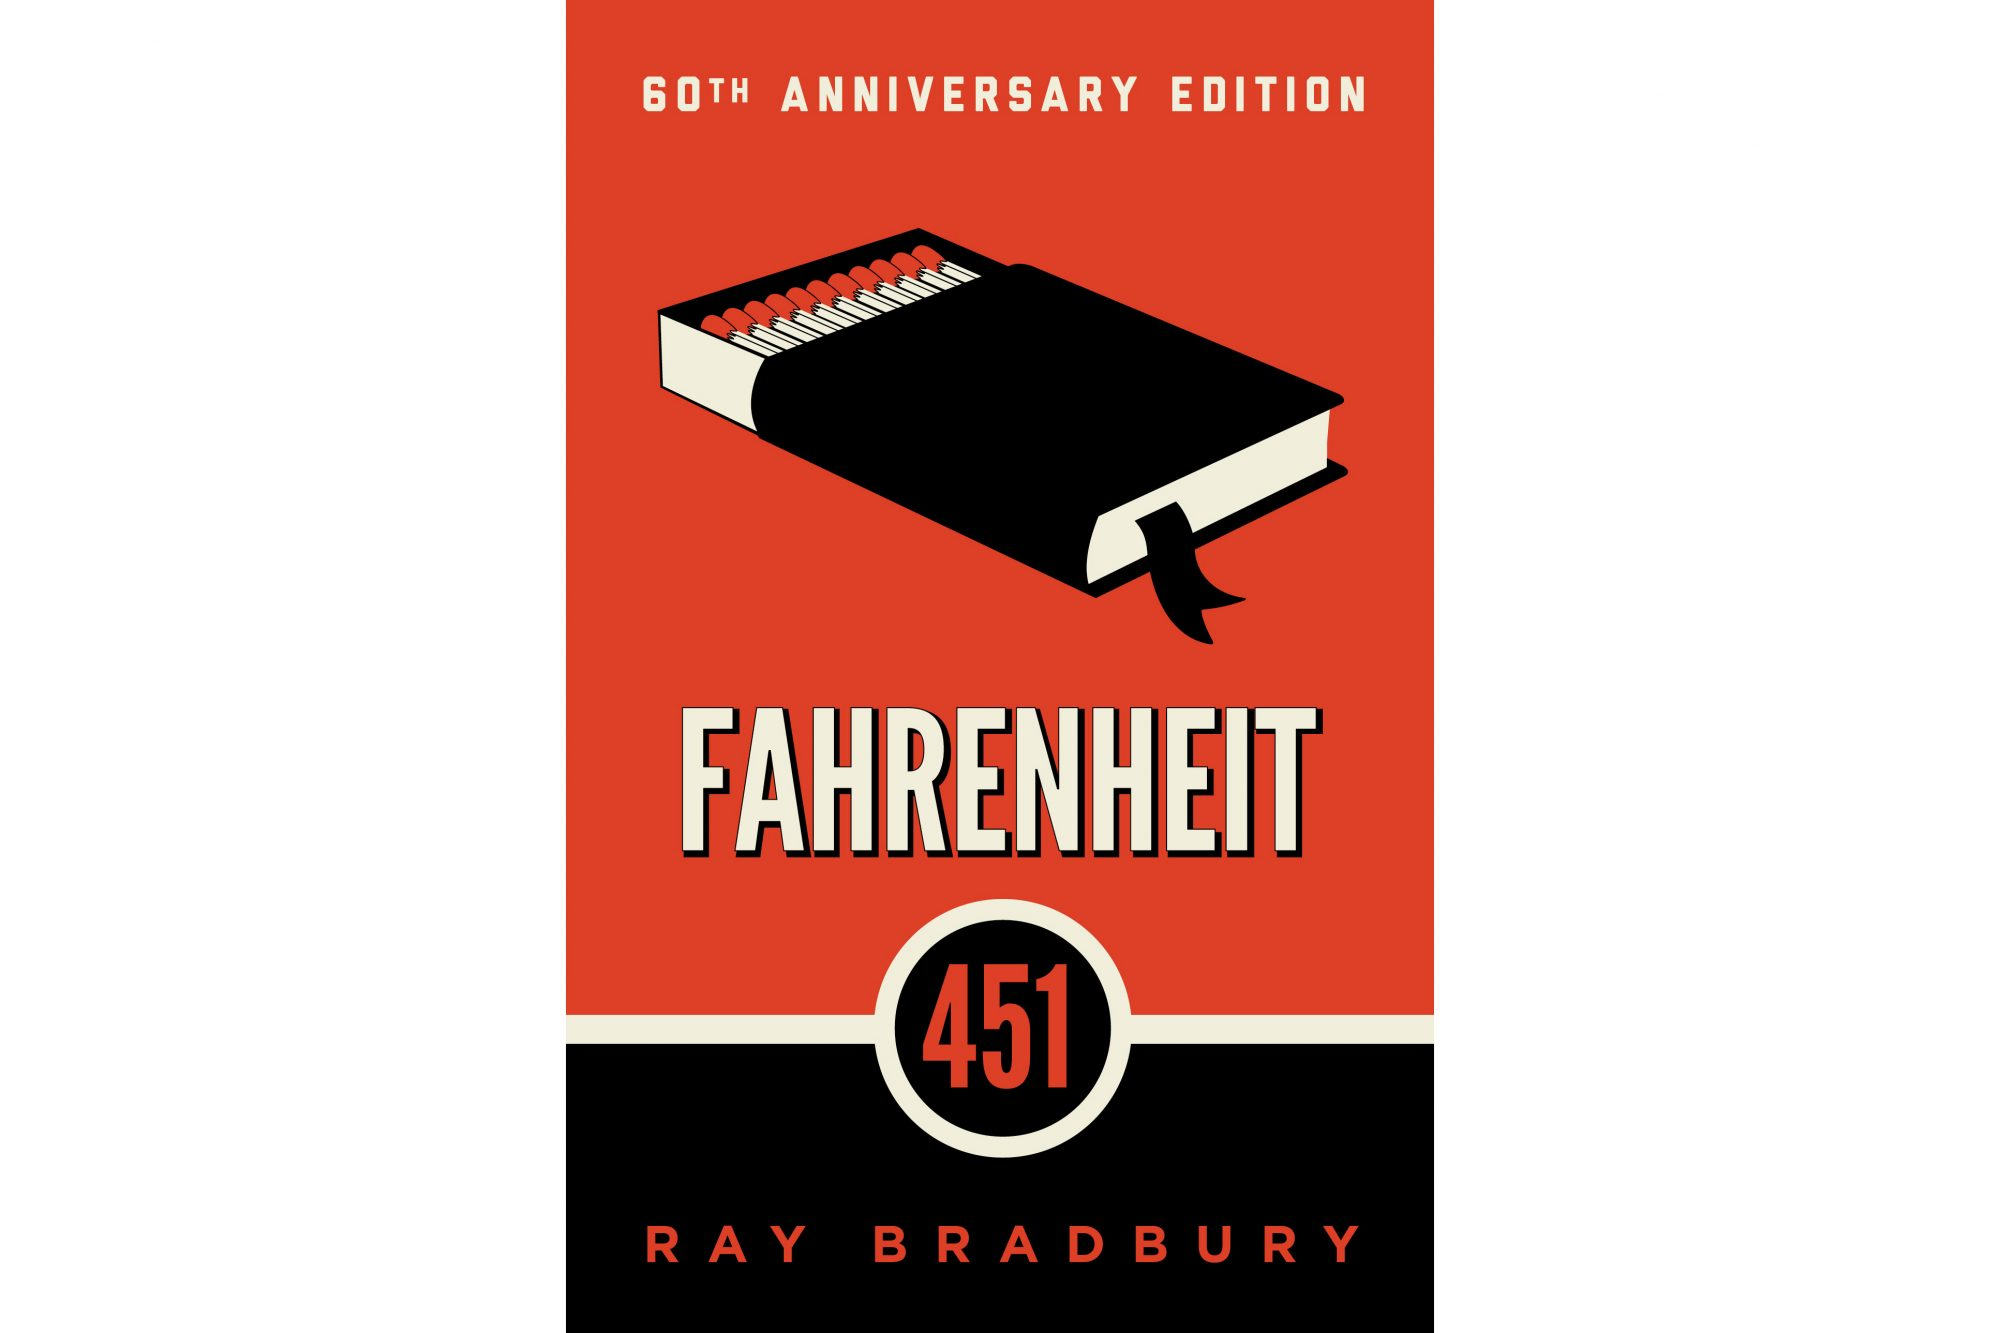 Fahrenheit 451, by Ray Bradbury (BRIDGE BOOKS)